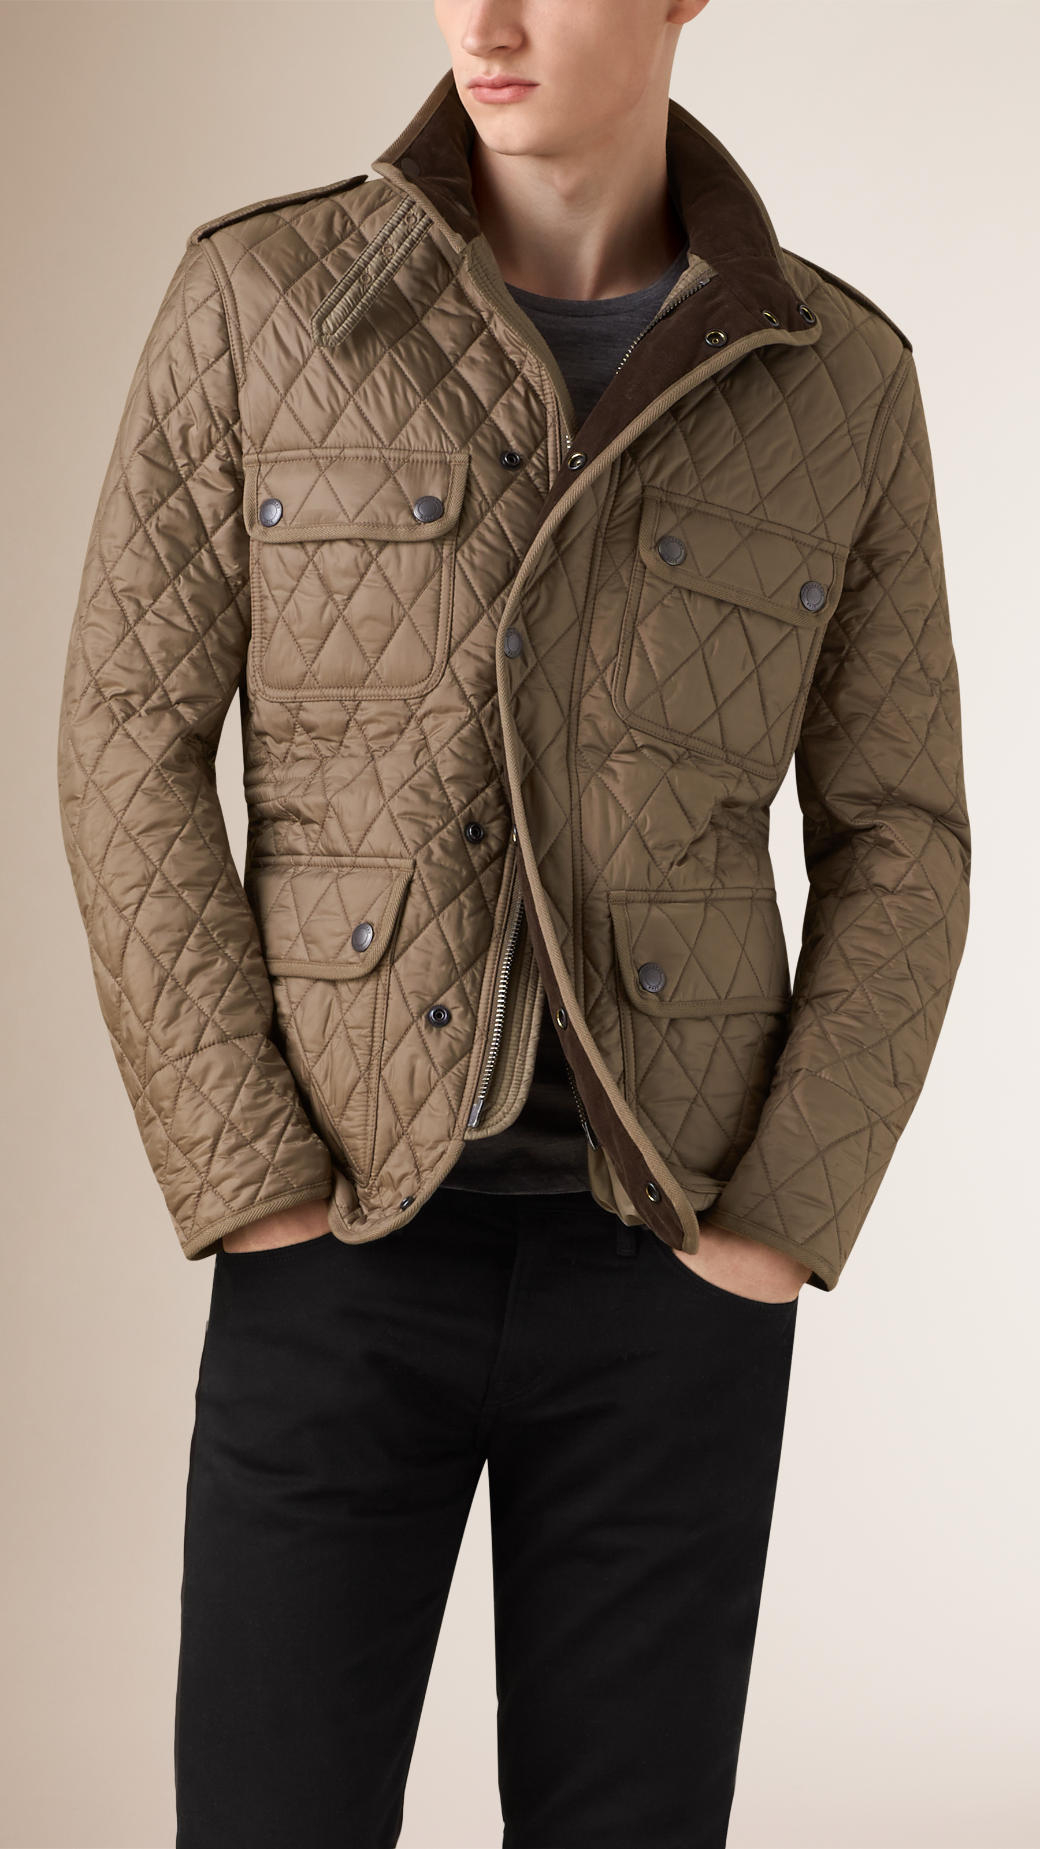 Lyst - Burberry Diamond Quilted Field Jacket in Natural for Men : mens lightweight quilted jacket - Adamdwight.com